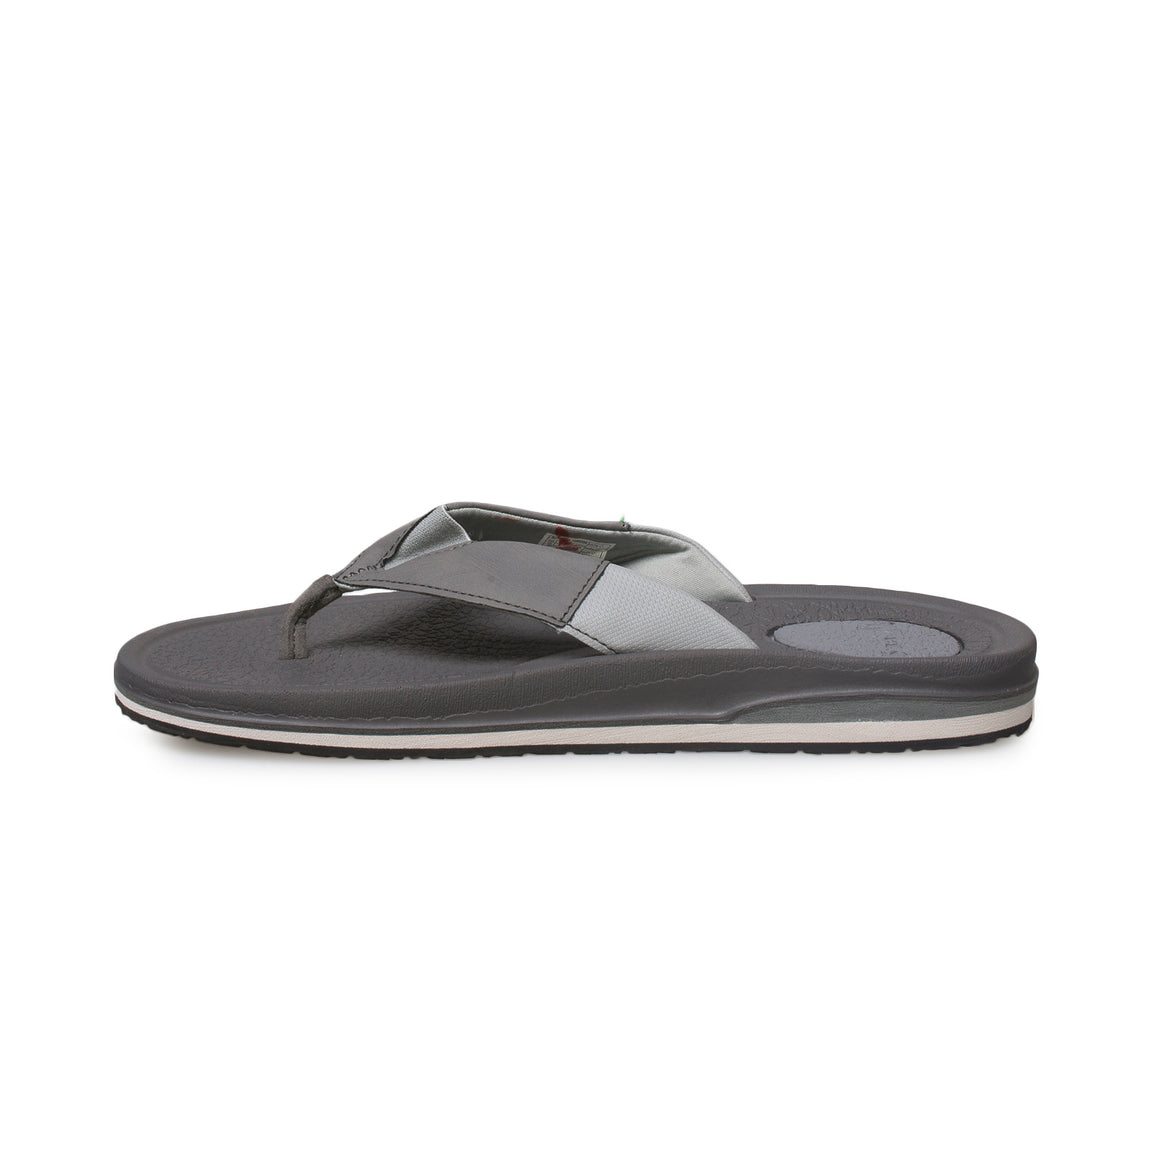 Sanuk Beer Cozy 3 Primo Charcoal Flip Flops - Men's